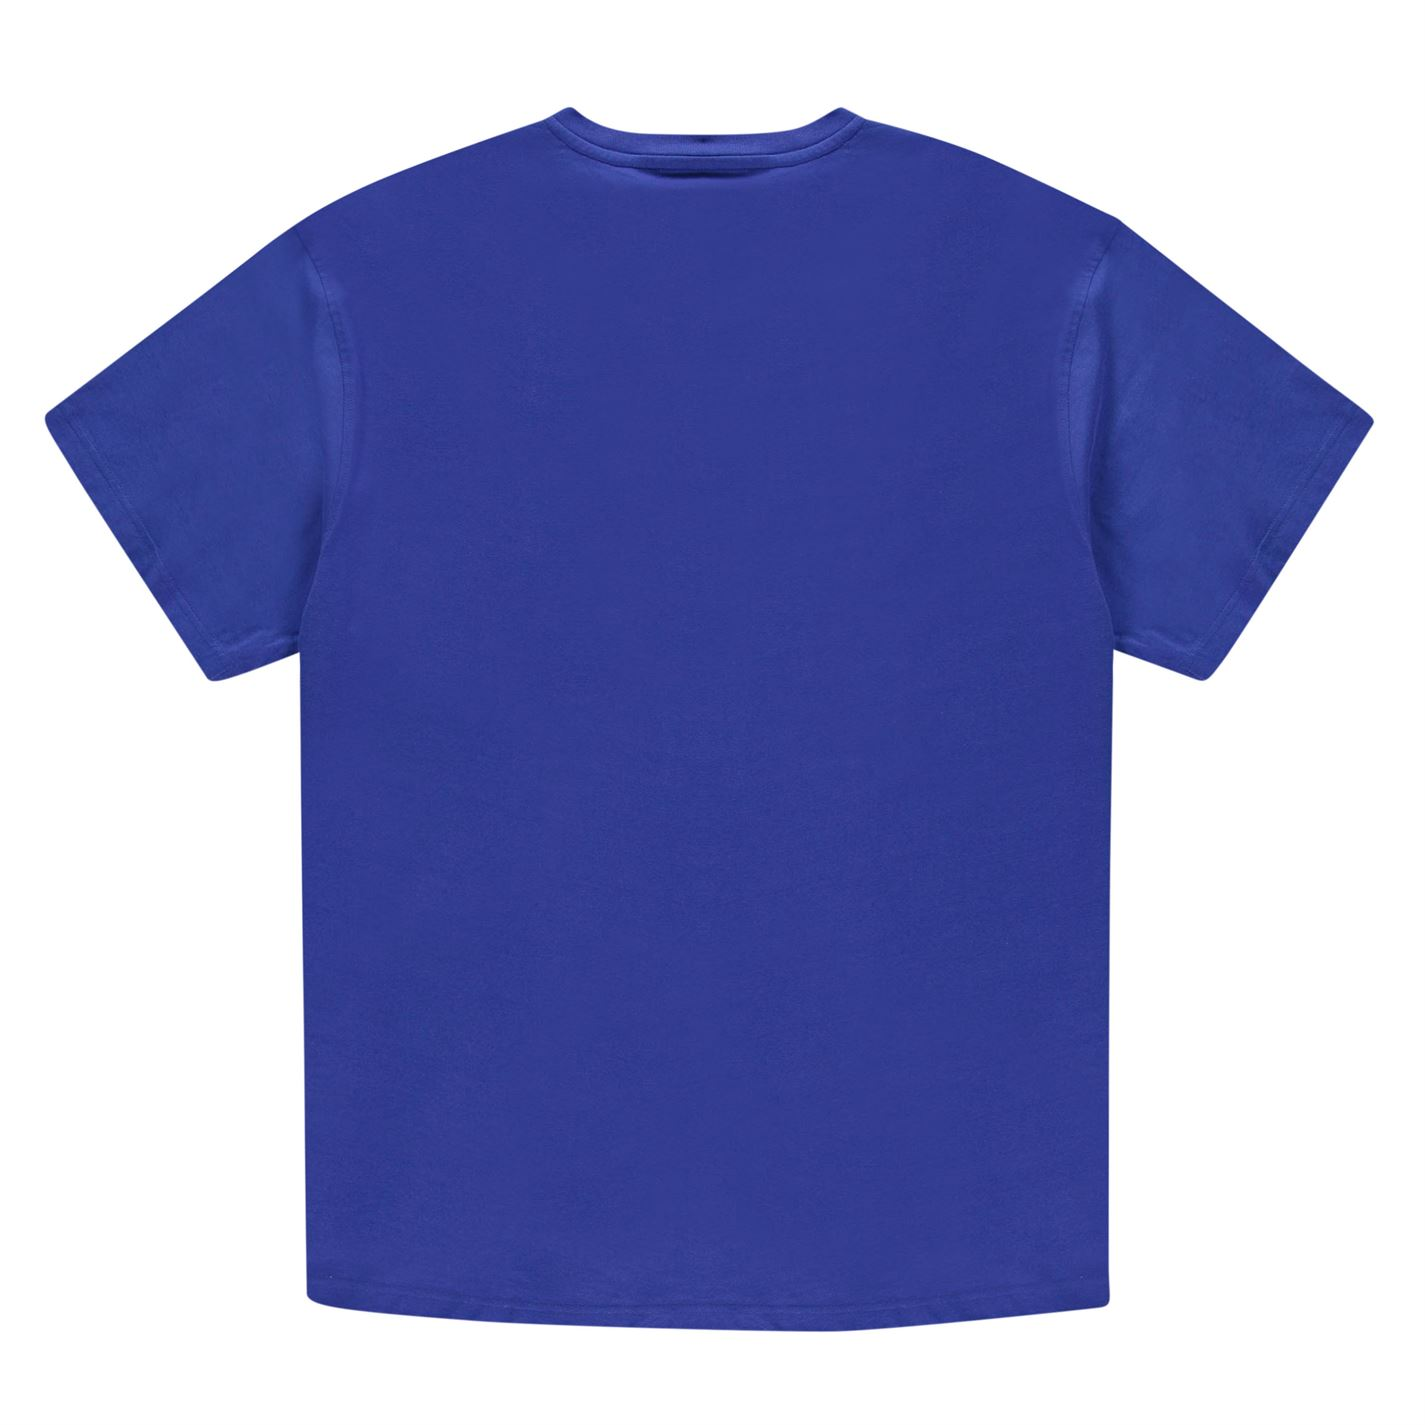 Pierre-Cardin-Mens-ExtraLarge-Single-Pocket-T-Shirt-Crew-Neck-Tee-Top-Short thumbnail 12